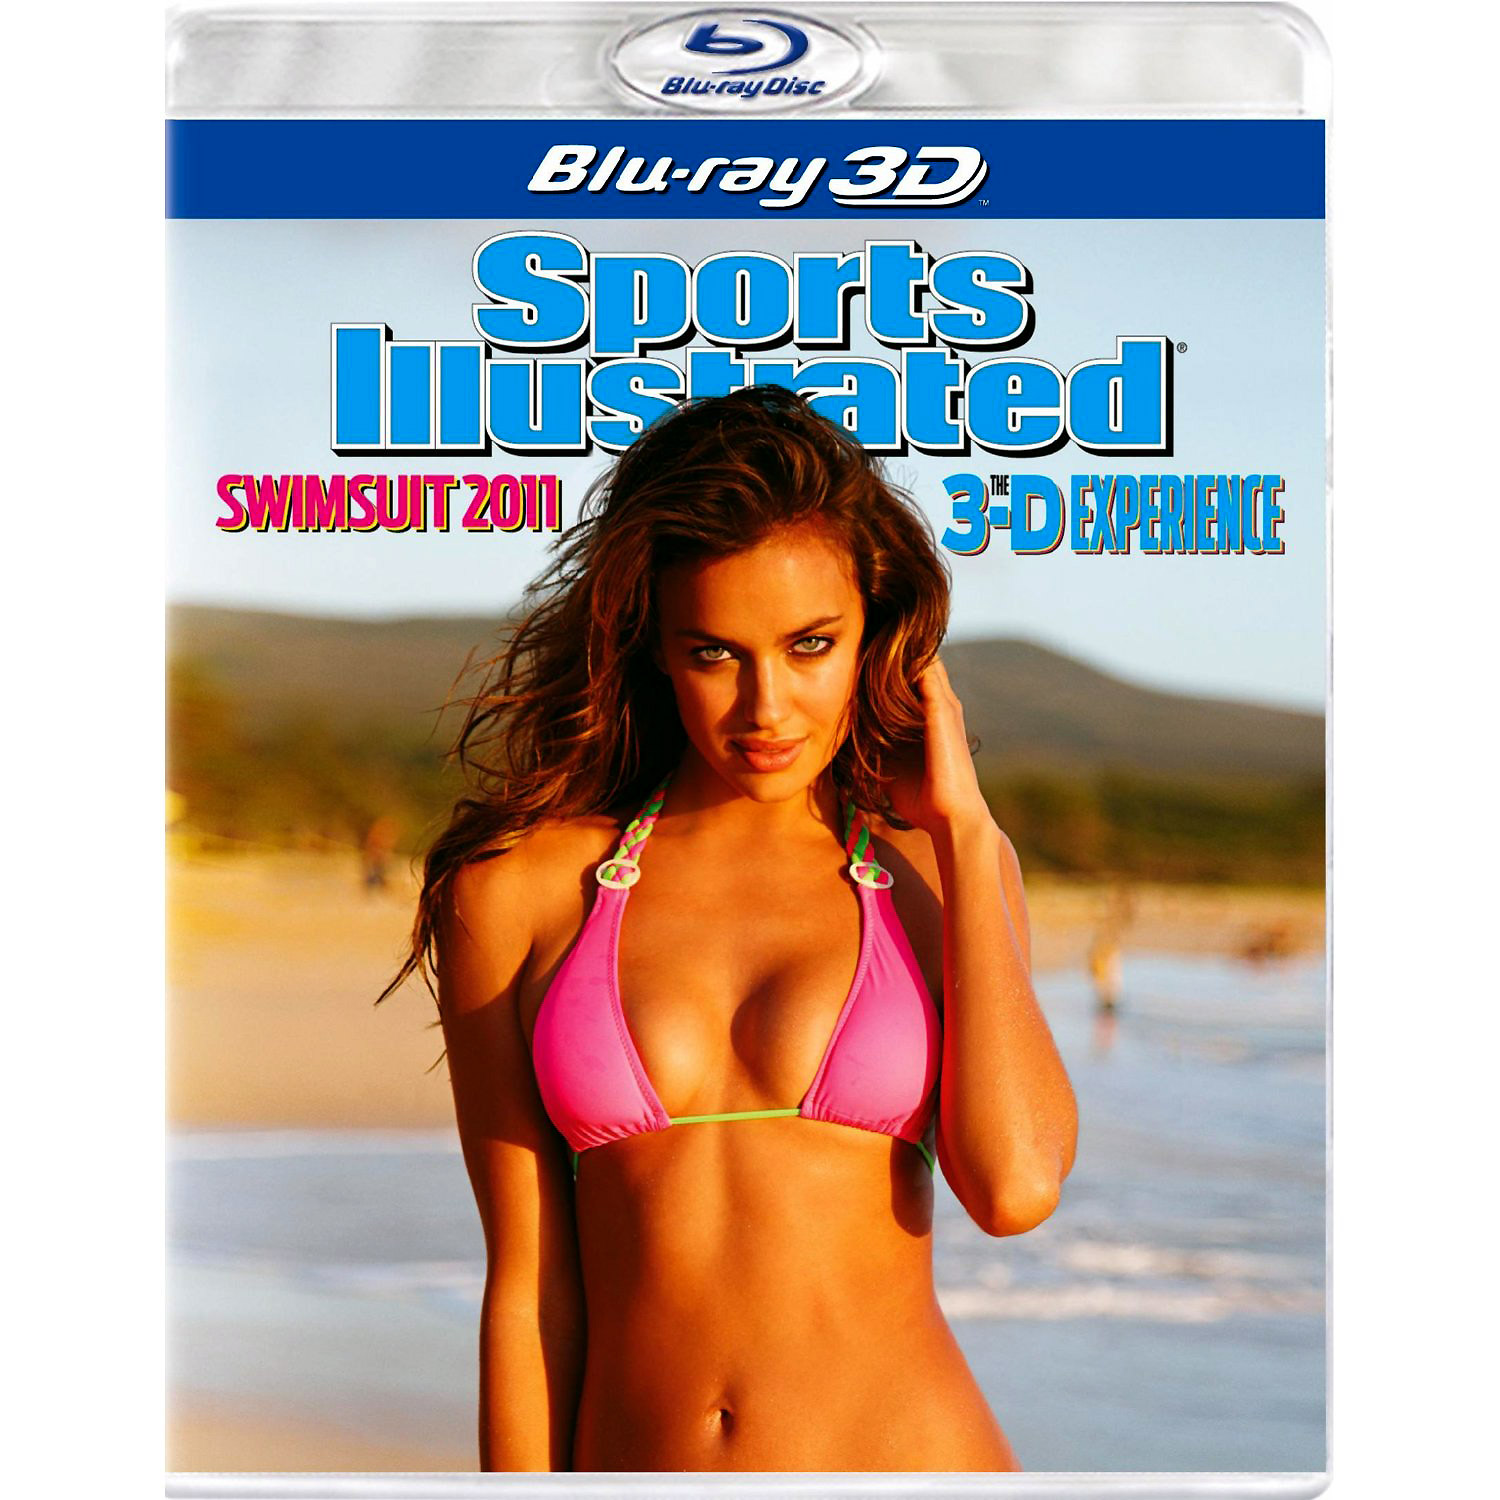 Sports Illustrated Swimsuit 2011: The 3d Experience